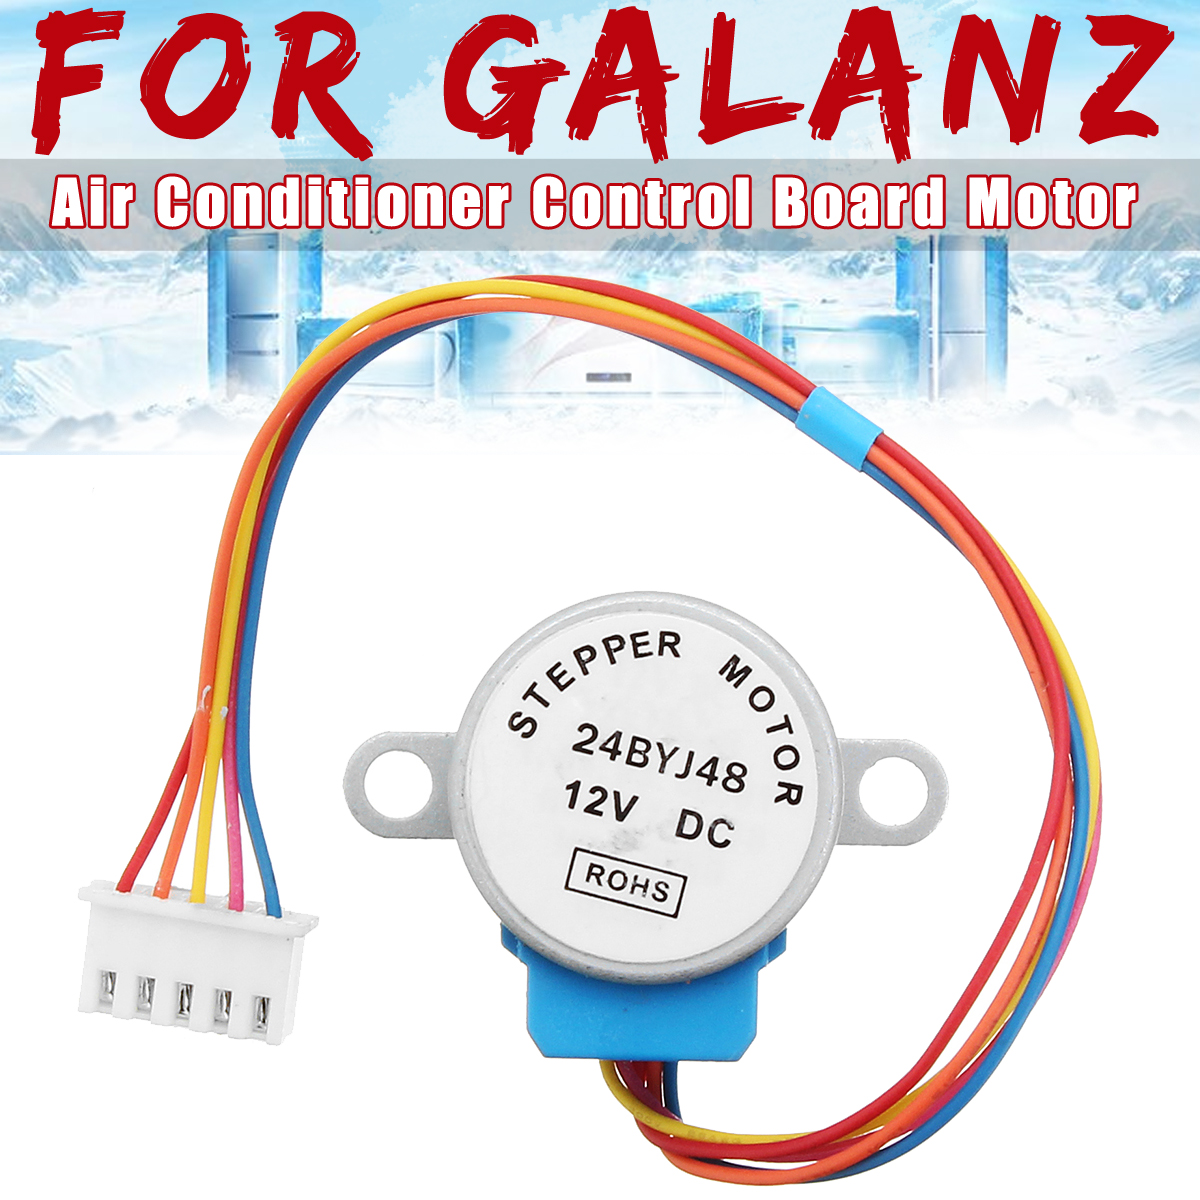 small resolution of gal12a bd air conditioner control board motor outboard motor metal air conditioner parts for galanz